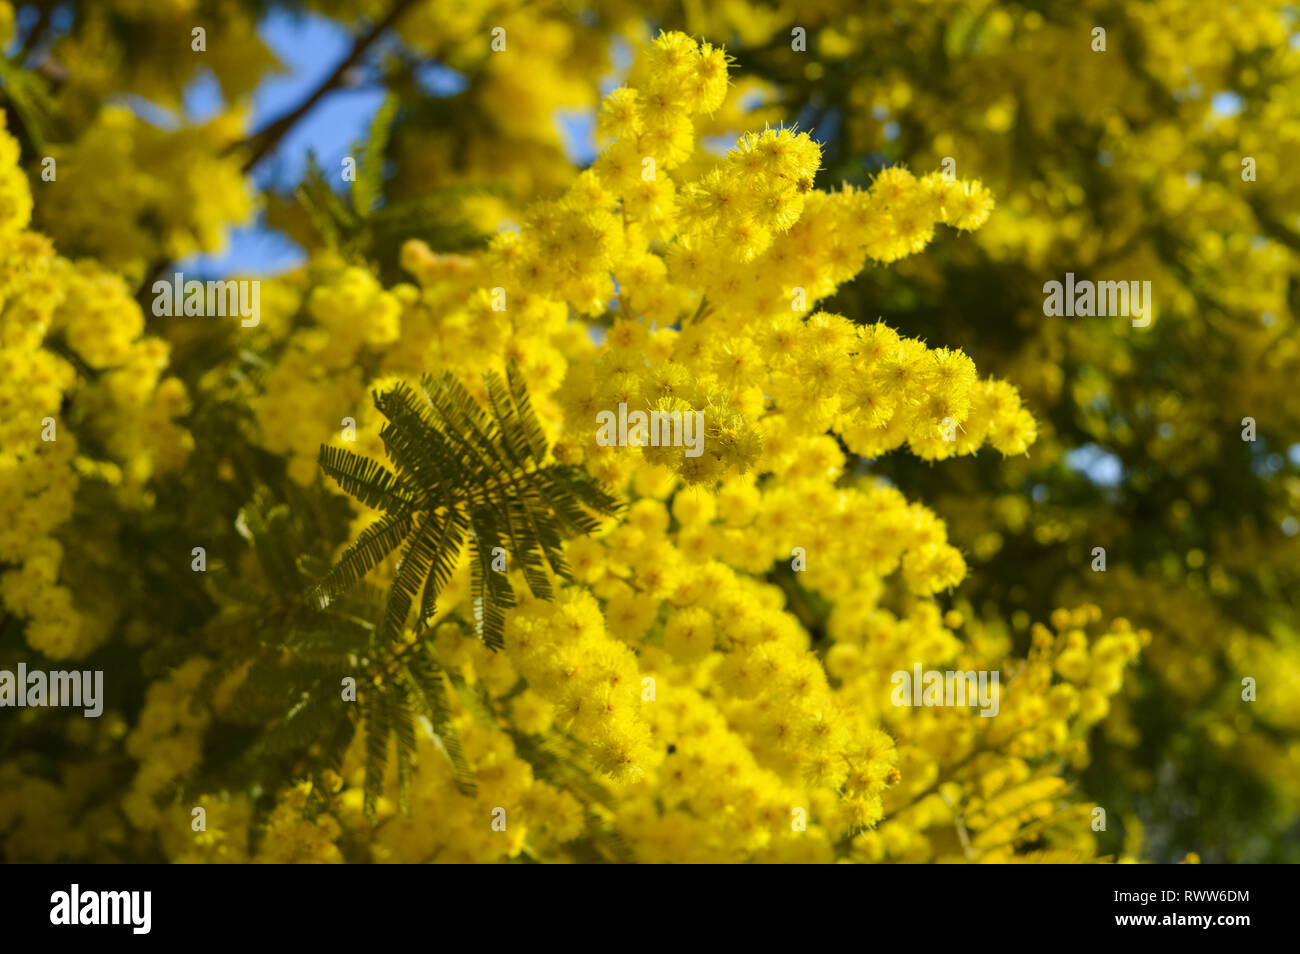 Acacia Dealbata Plant Stock Photos Acacia Dealbata Plant Stock